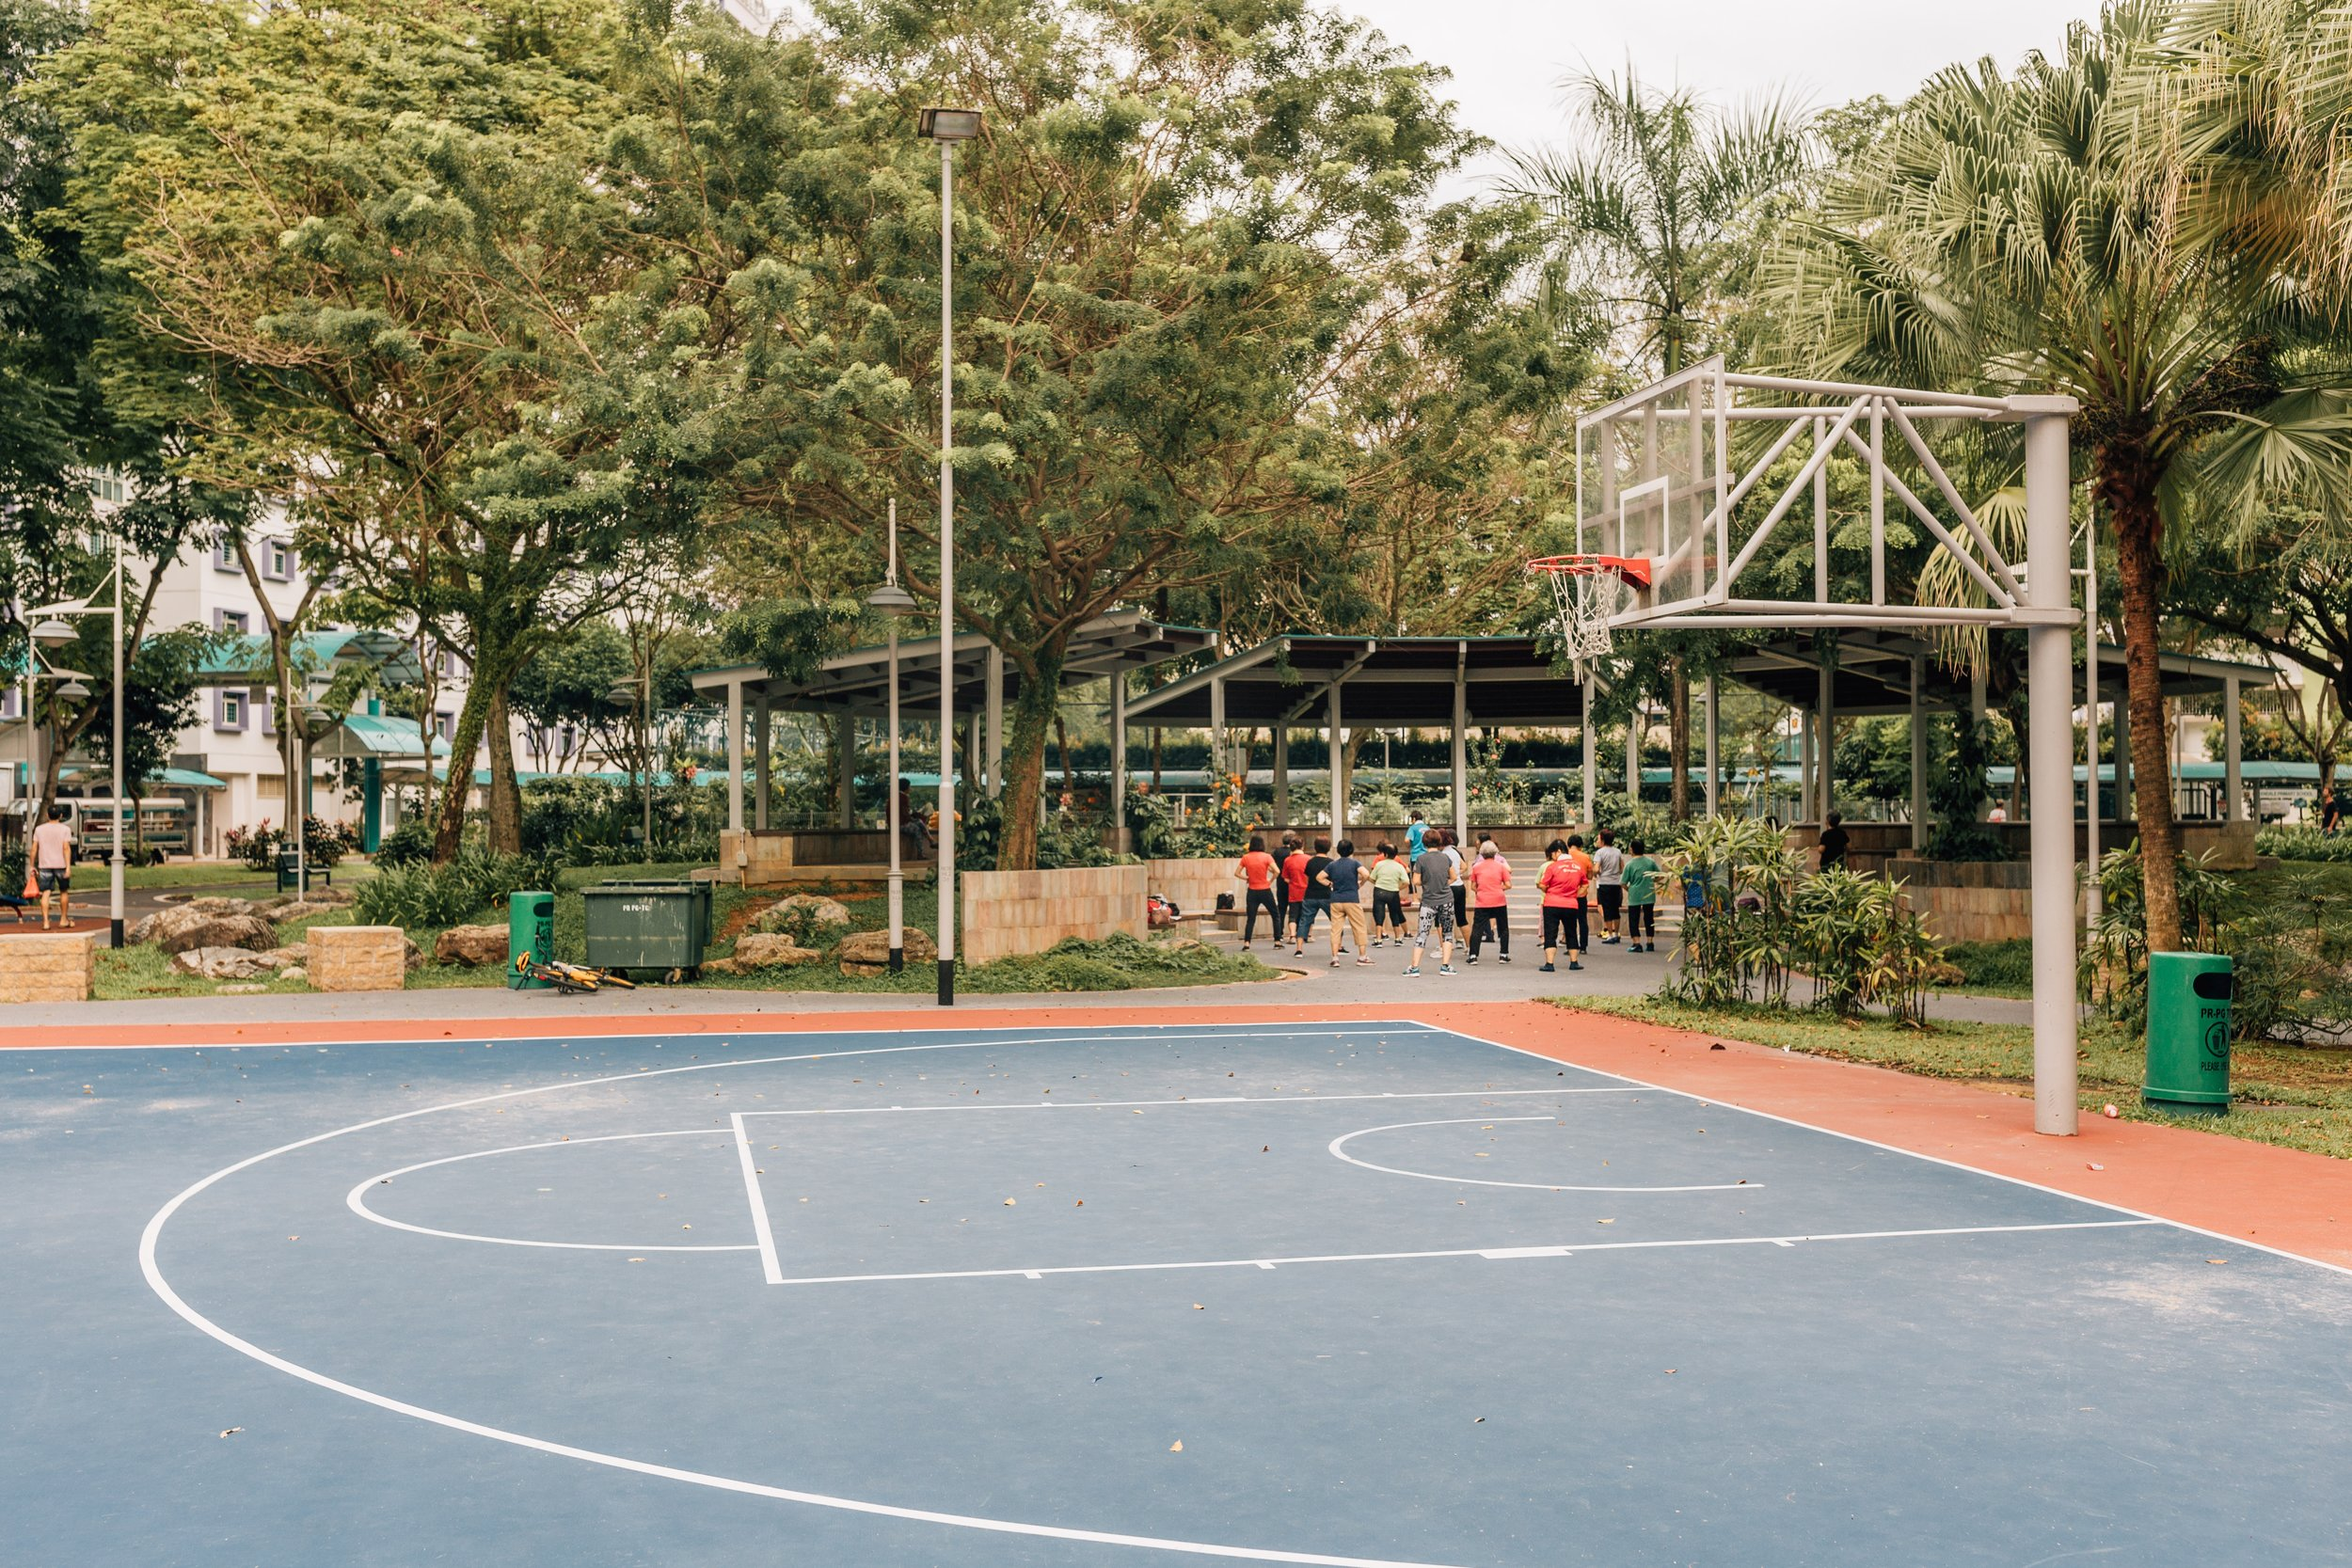 Fig 1. Outdoor Thermal Comfort related campaign in Singapore / Source: Lina Meisen Photography